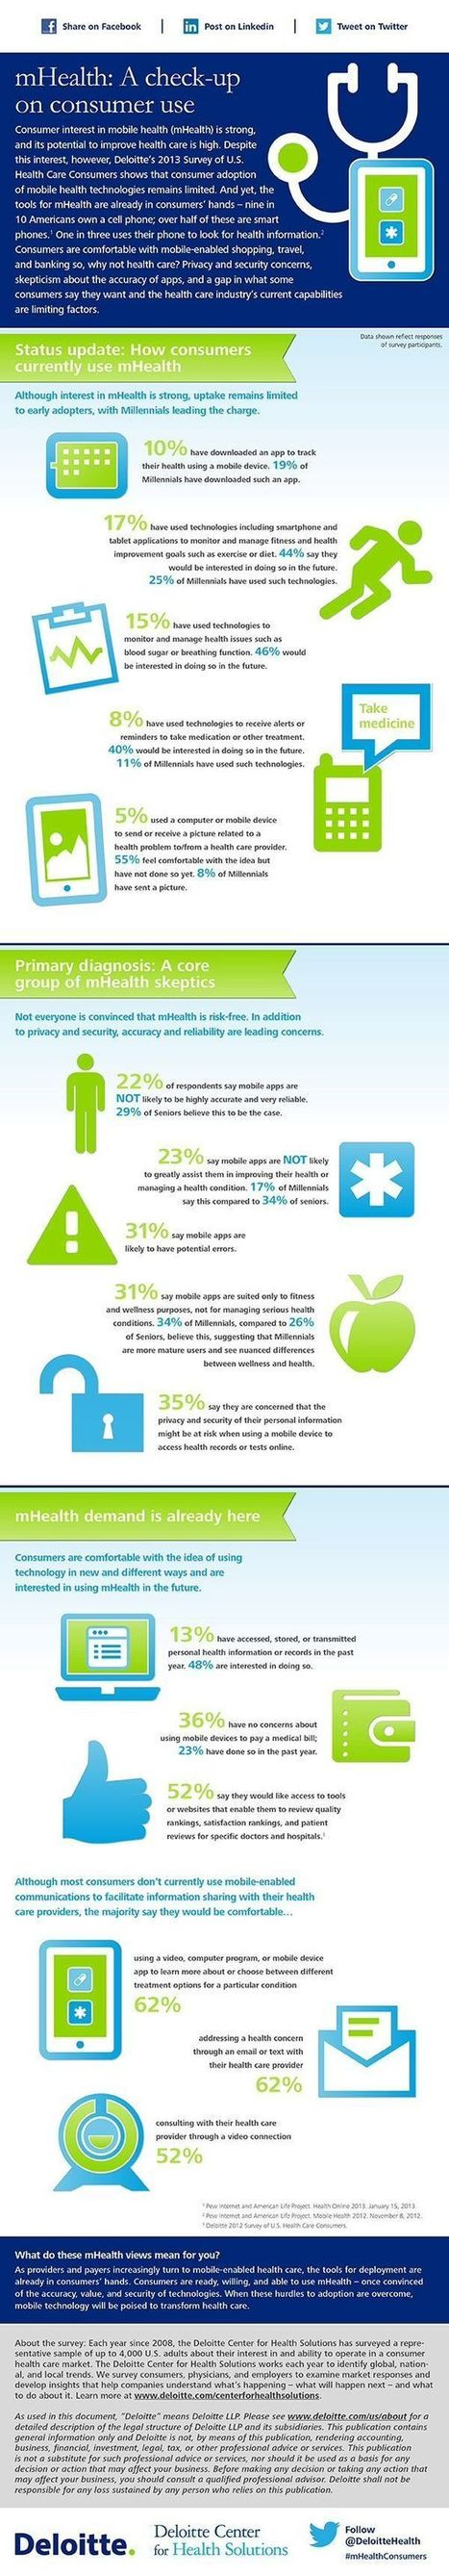 mHealth: A check-up on consumer use | mHealth: Patient Centered Care-Clinical Tools-Targeting Chronic Diseases | Scoop.it